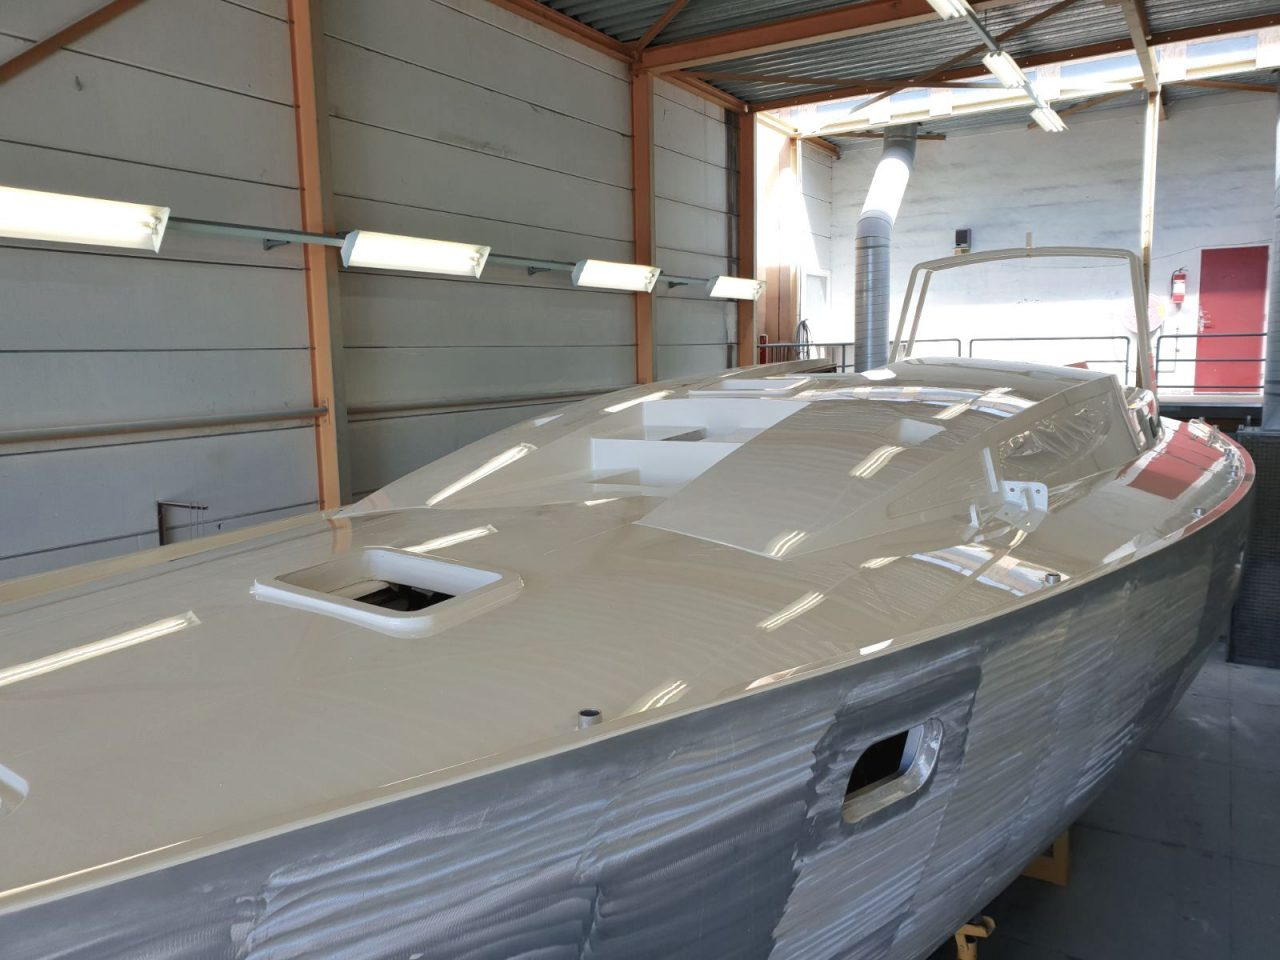 aluminium 47 explorer yacht tipsy tuna built by Hutting Yachts